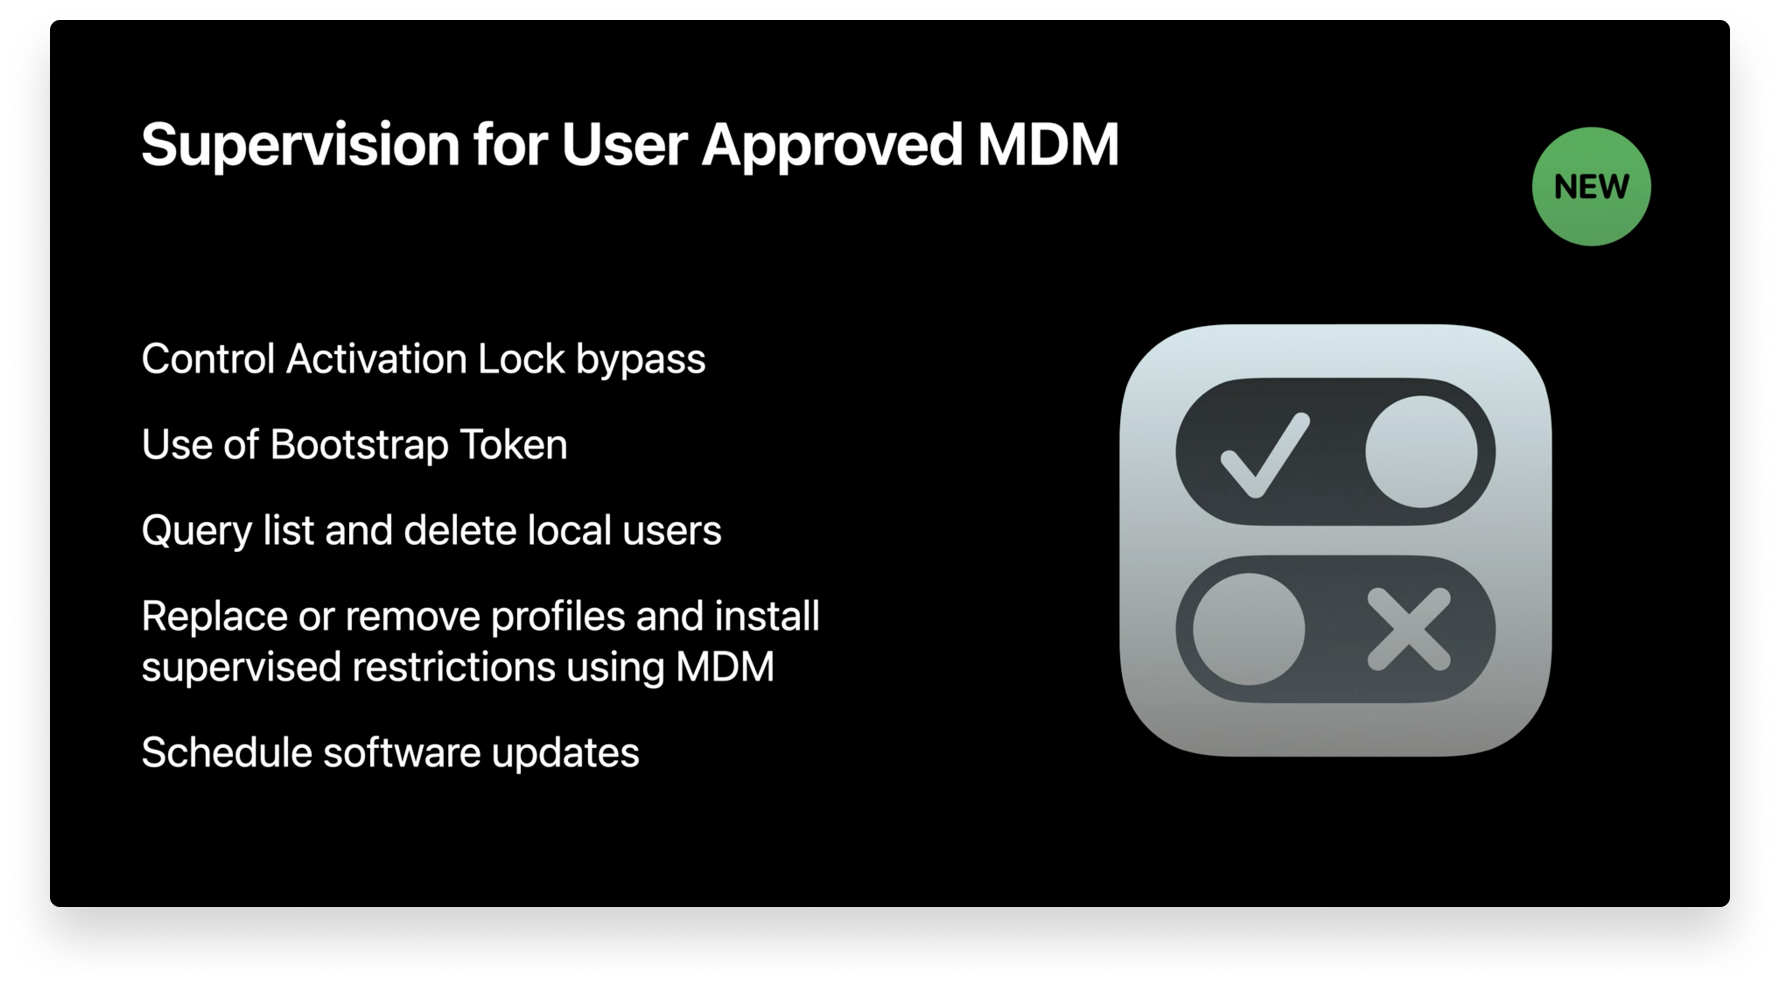 supervision for user approved mdm